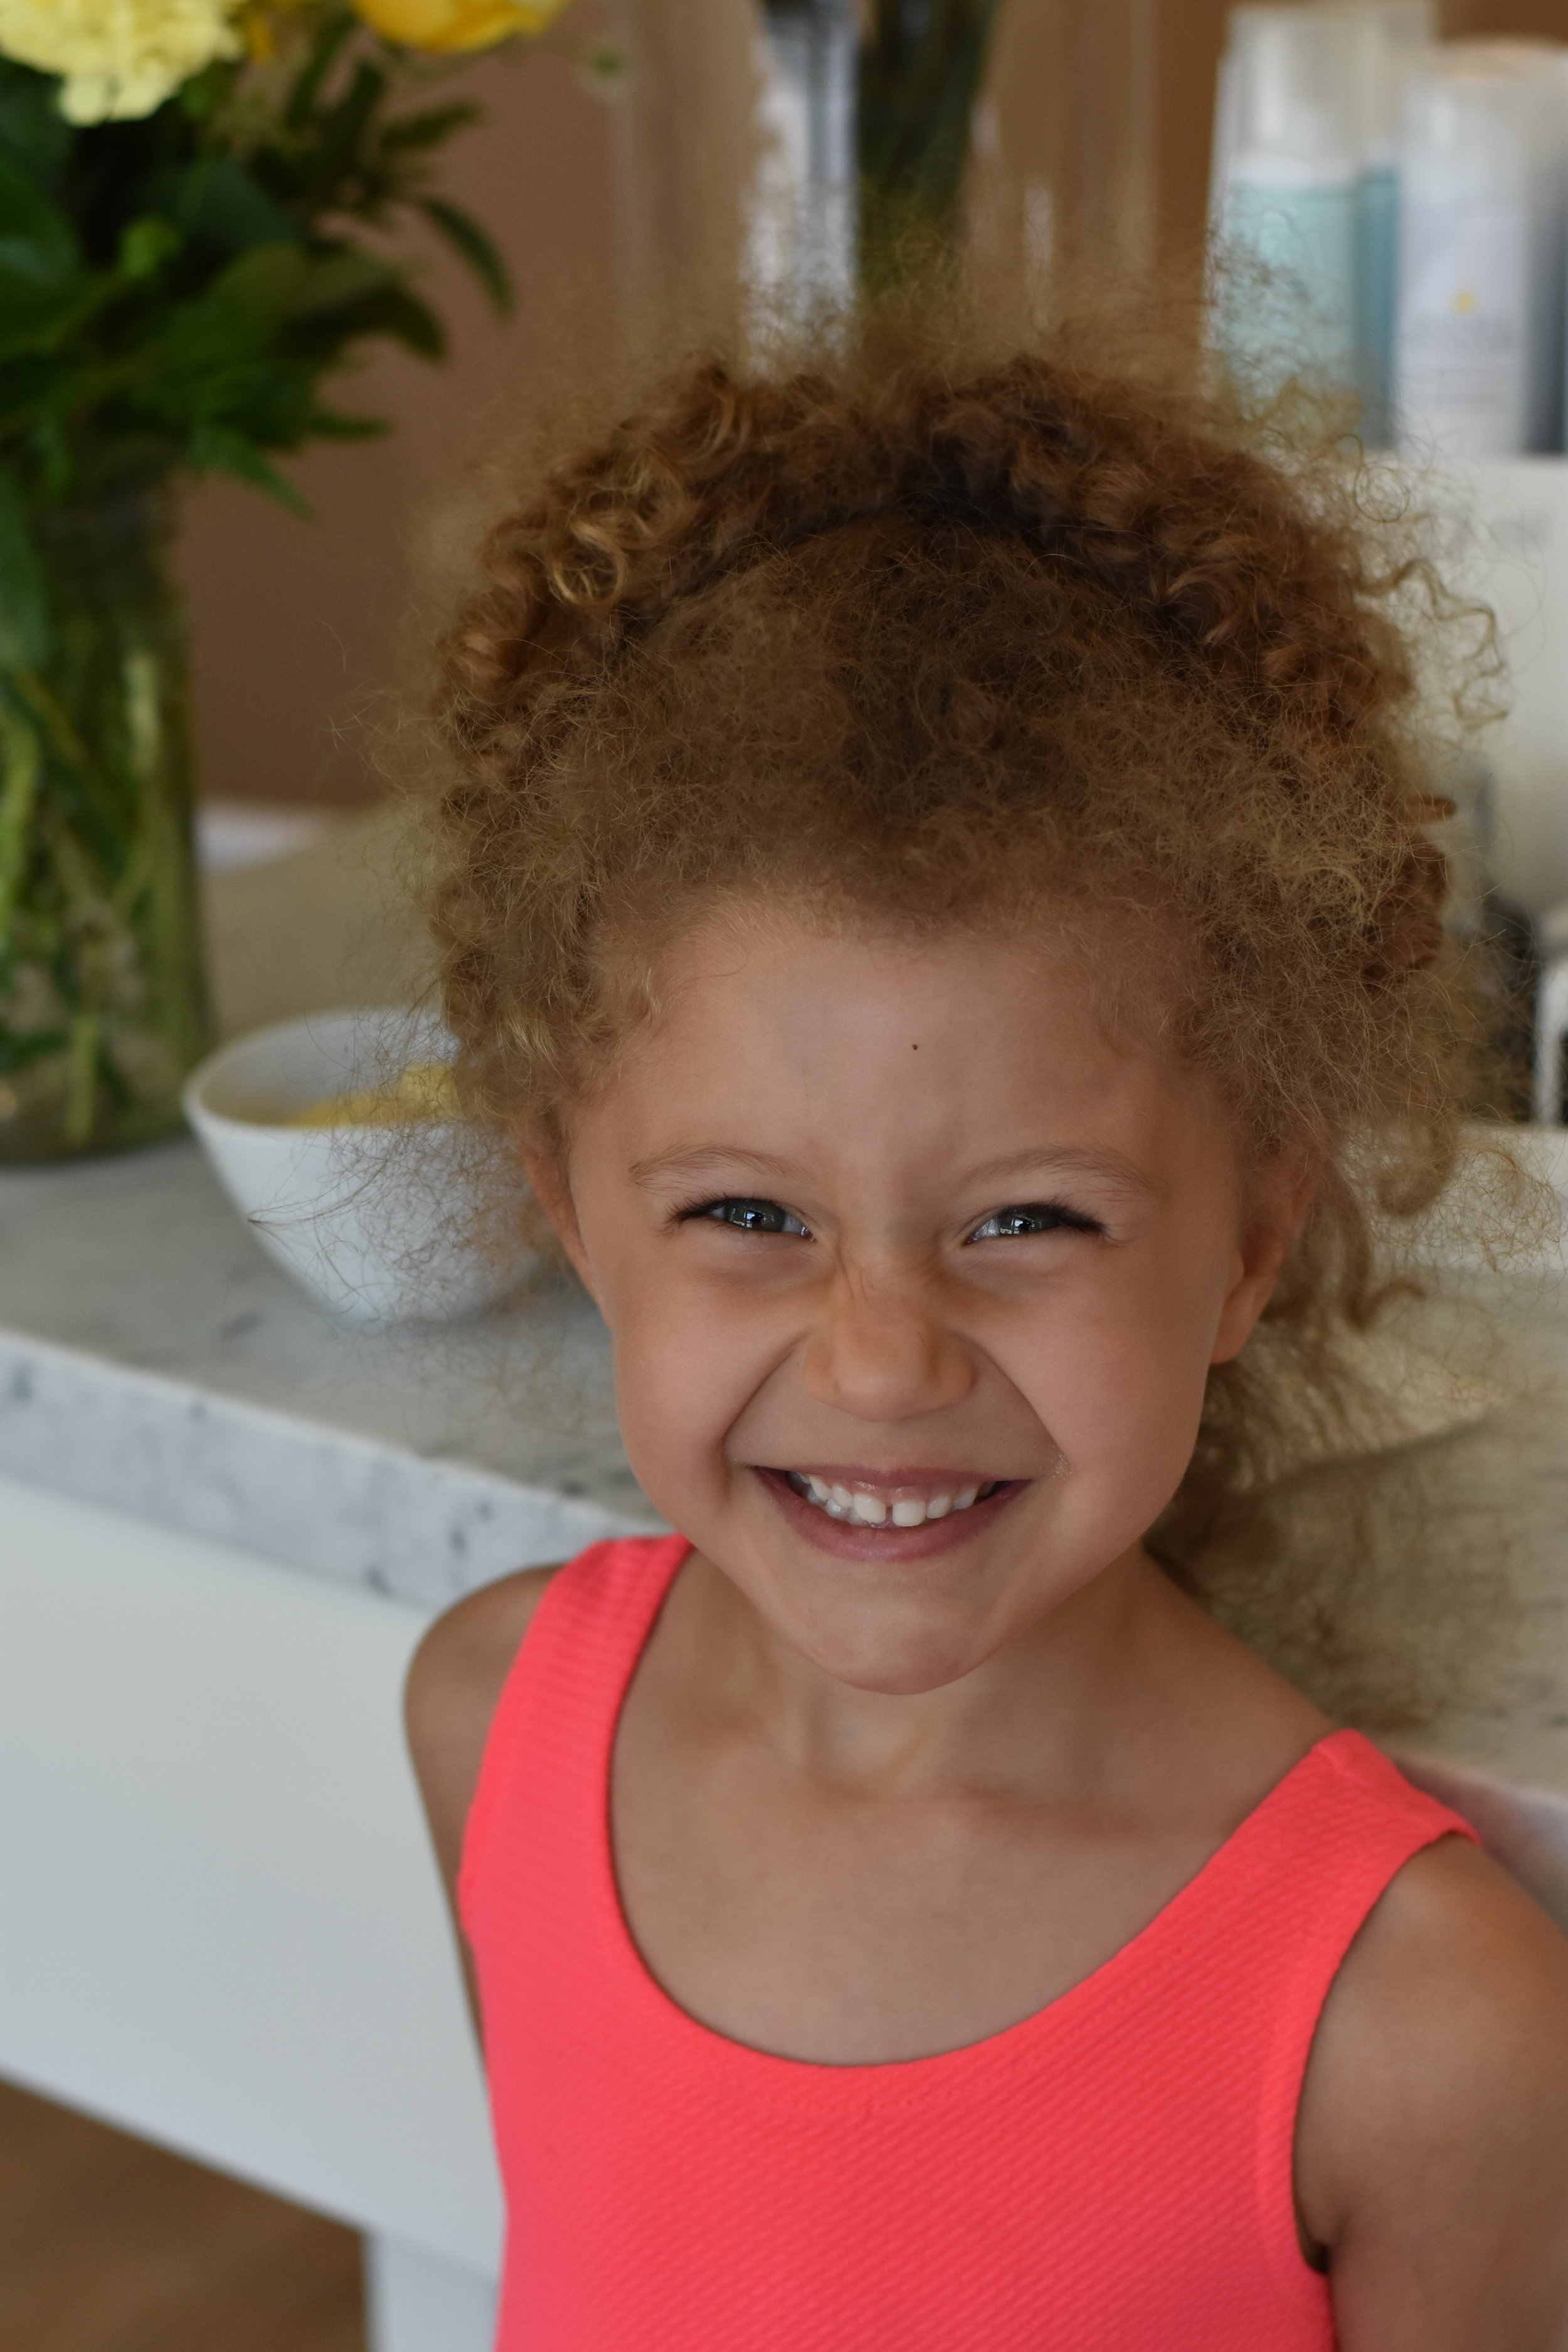 before picture of little girl with curly hair at DryBar salon.